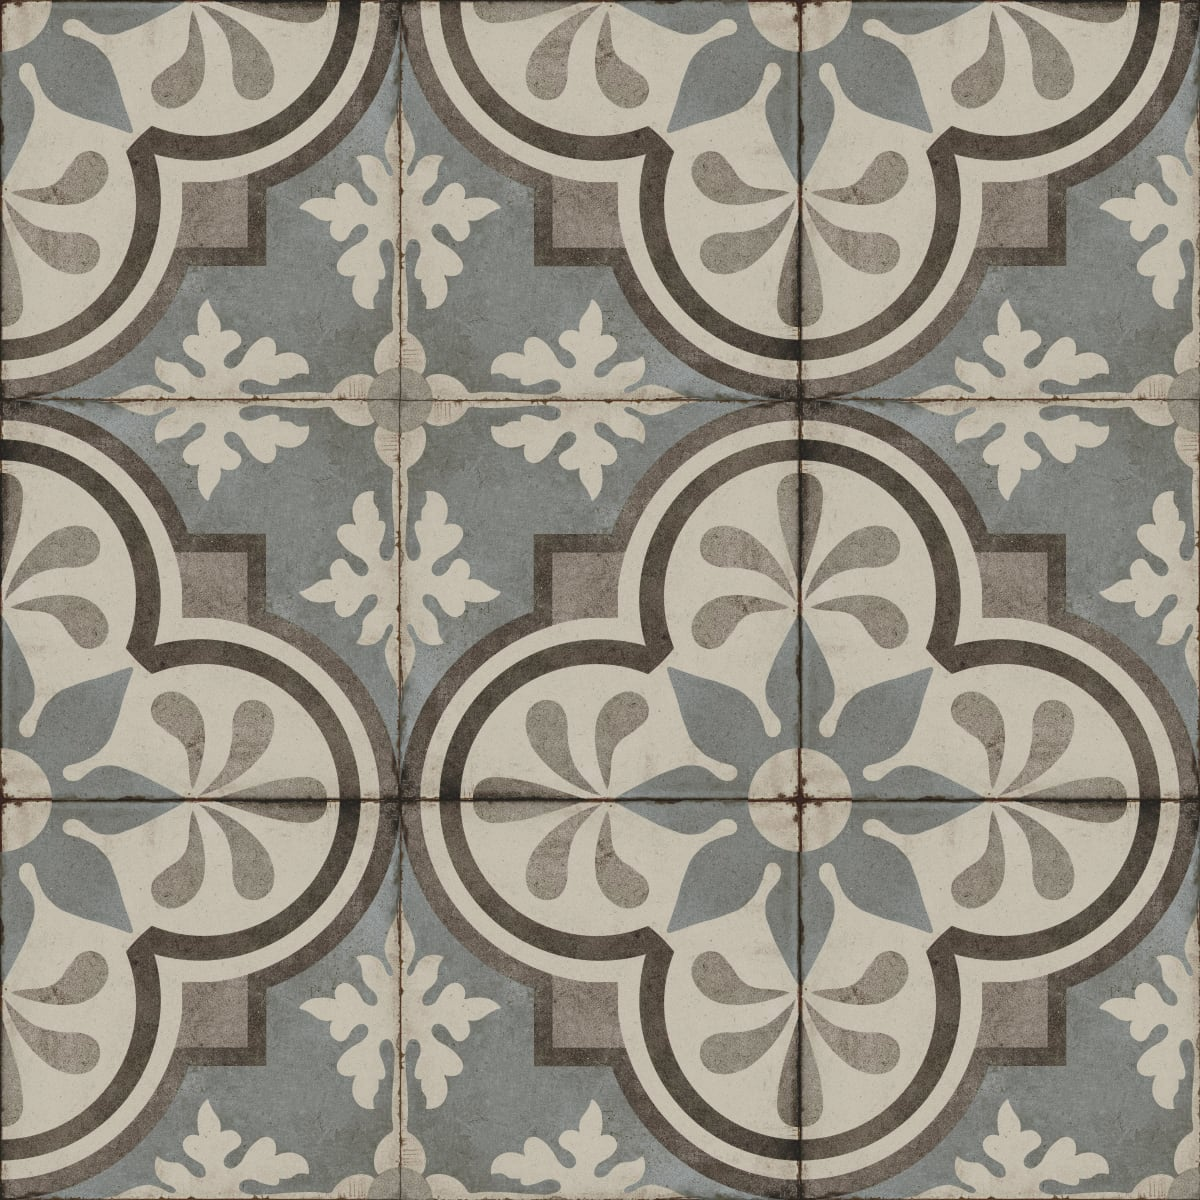 Daltile Quartetto in Cool Fiore Field Tile - Come discover more French Farmhouse Decor inspired by Fixer Upper and click here to Get the Look of The Club House Kitchen & Sun Room. #fixerupper #joannagaines #kitchendecor #frenchfarmhouse